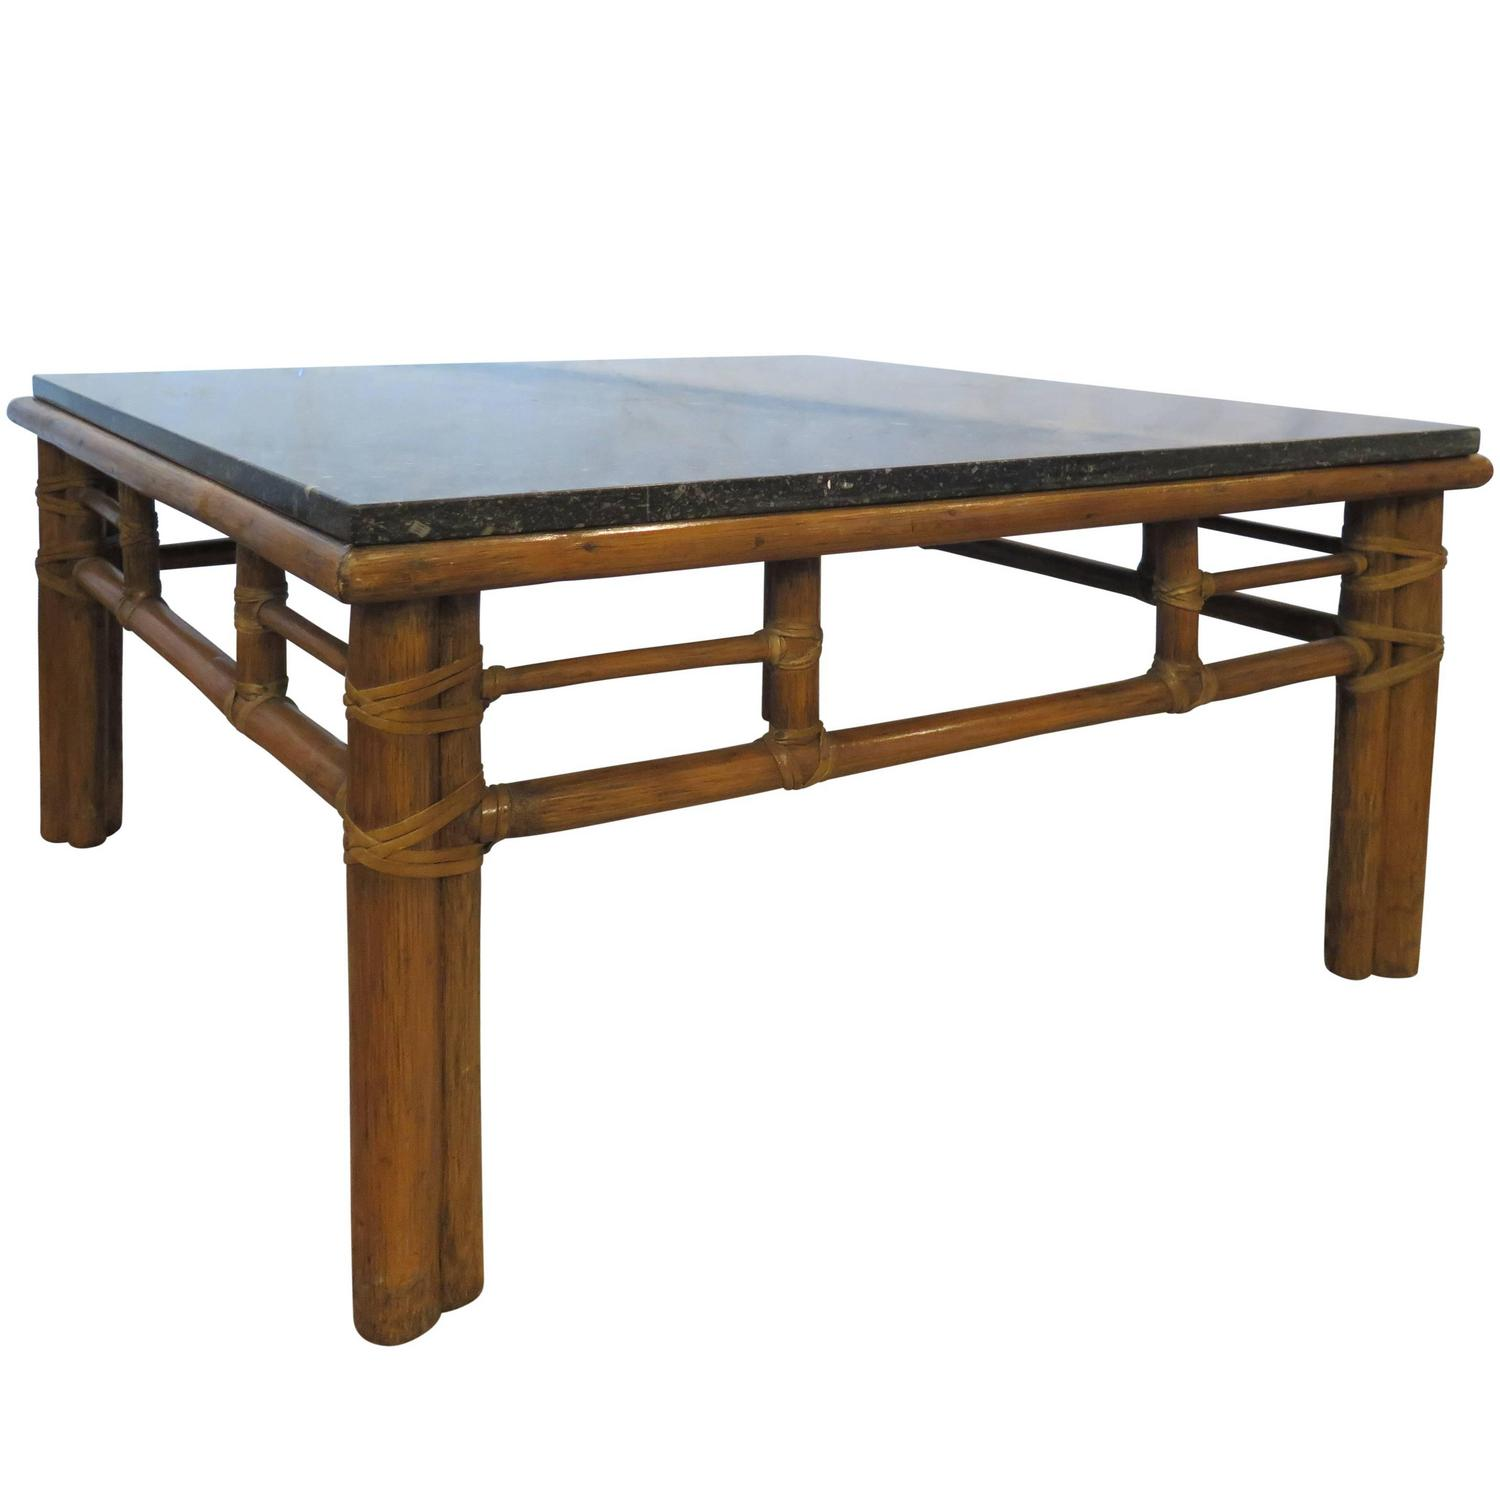 Mcguire coffee table with black marble top for sale at 1stdibs Coffee tables with marble tops